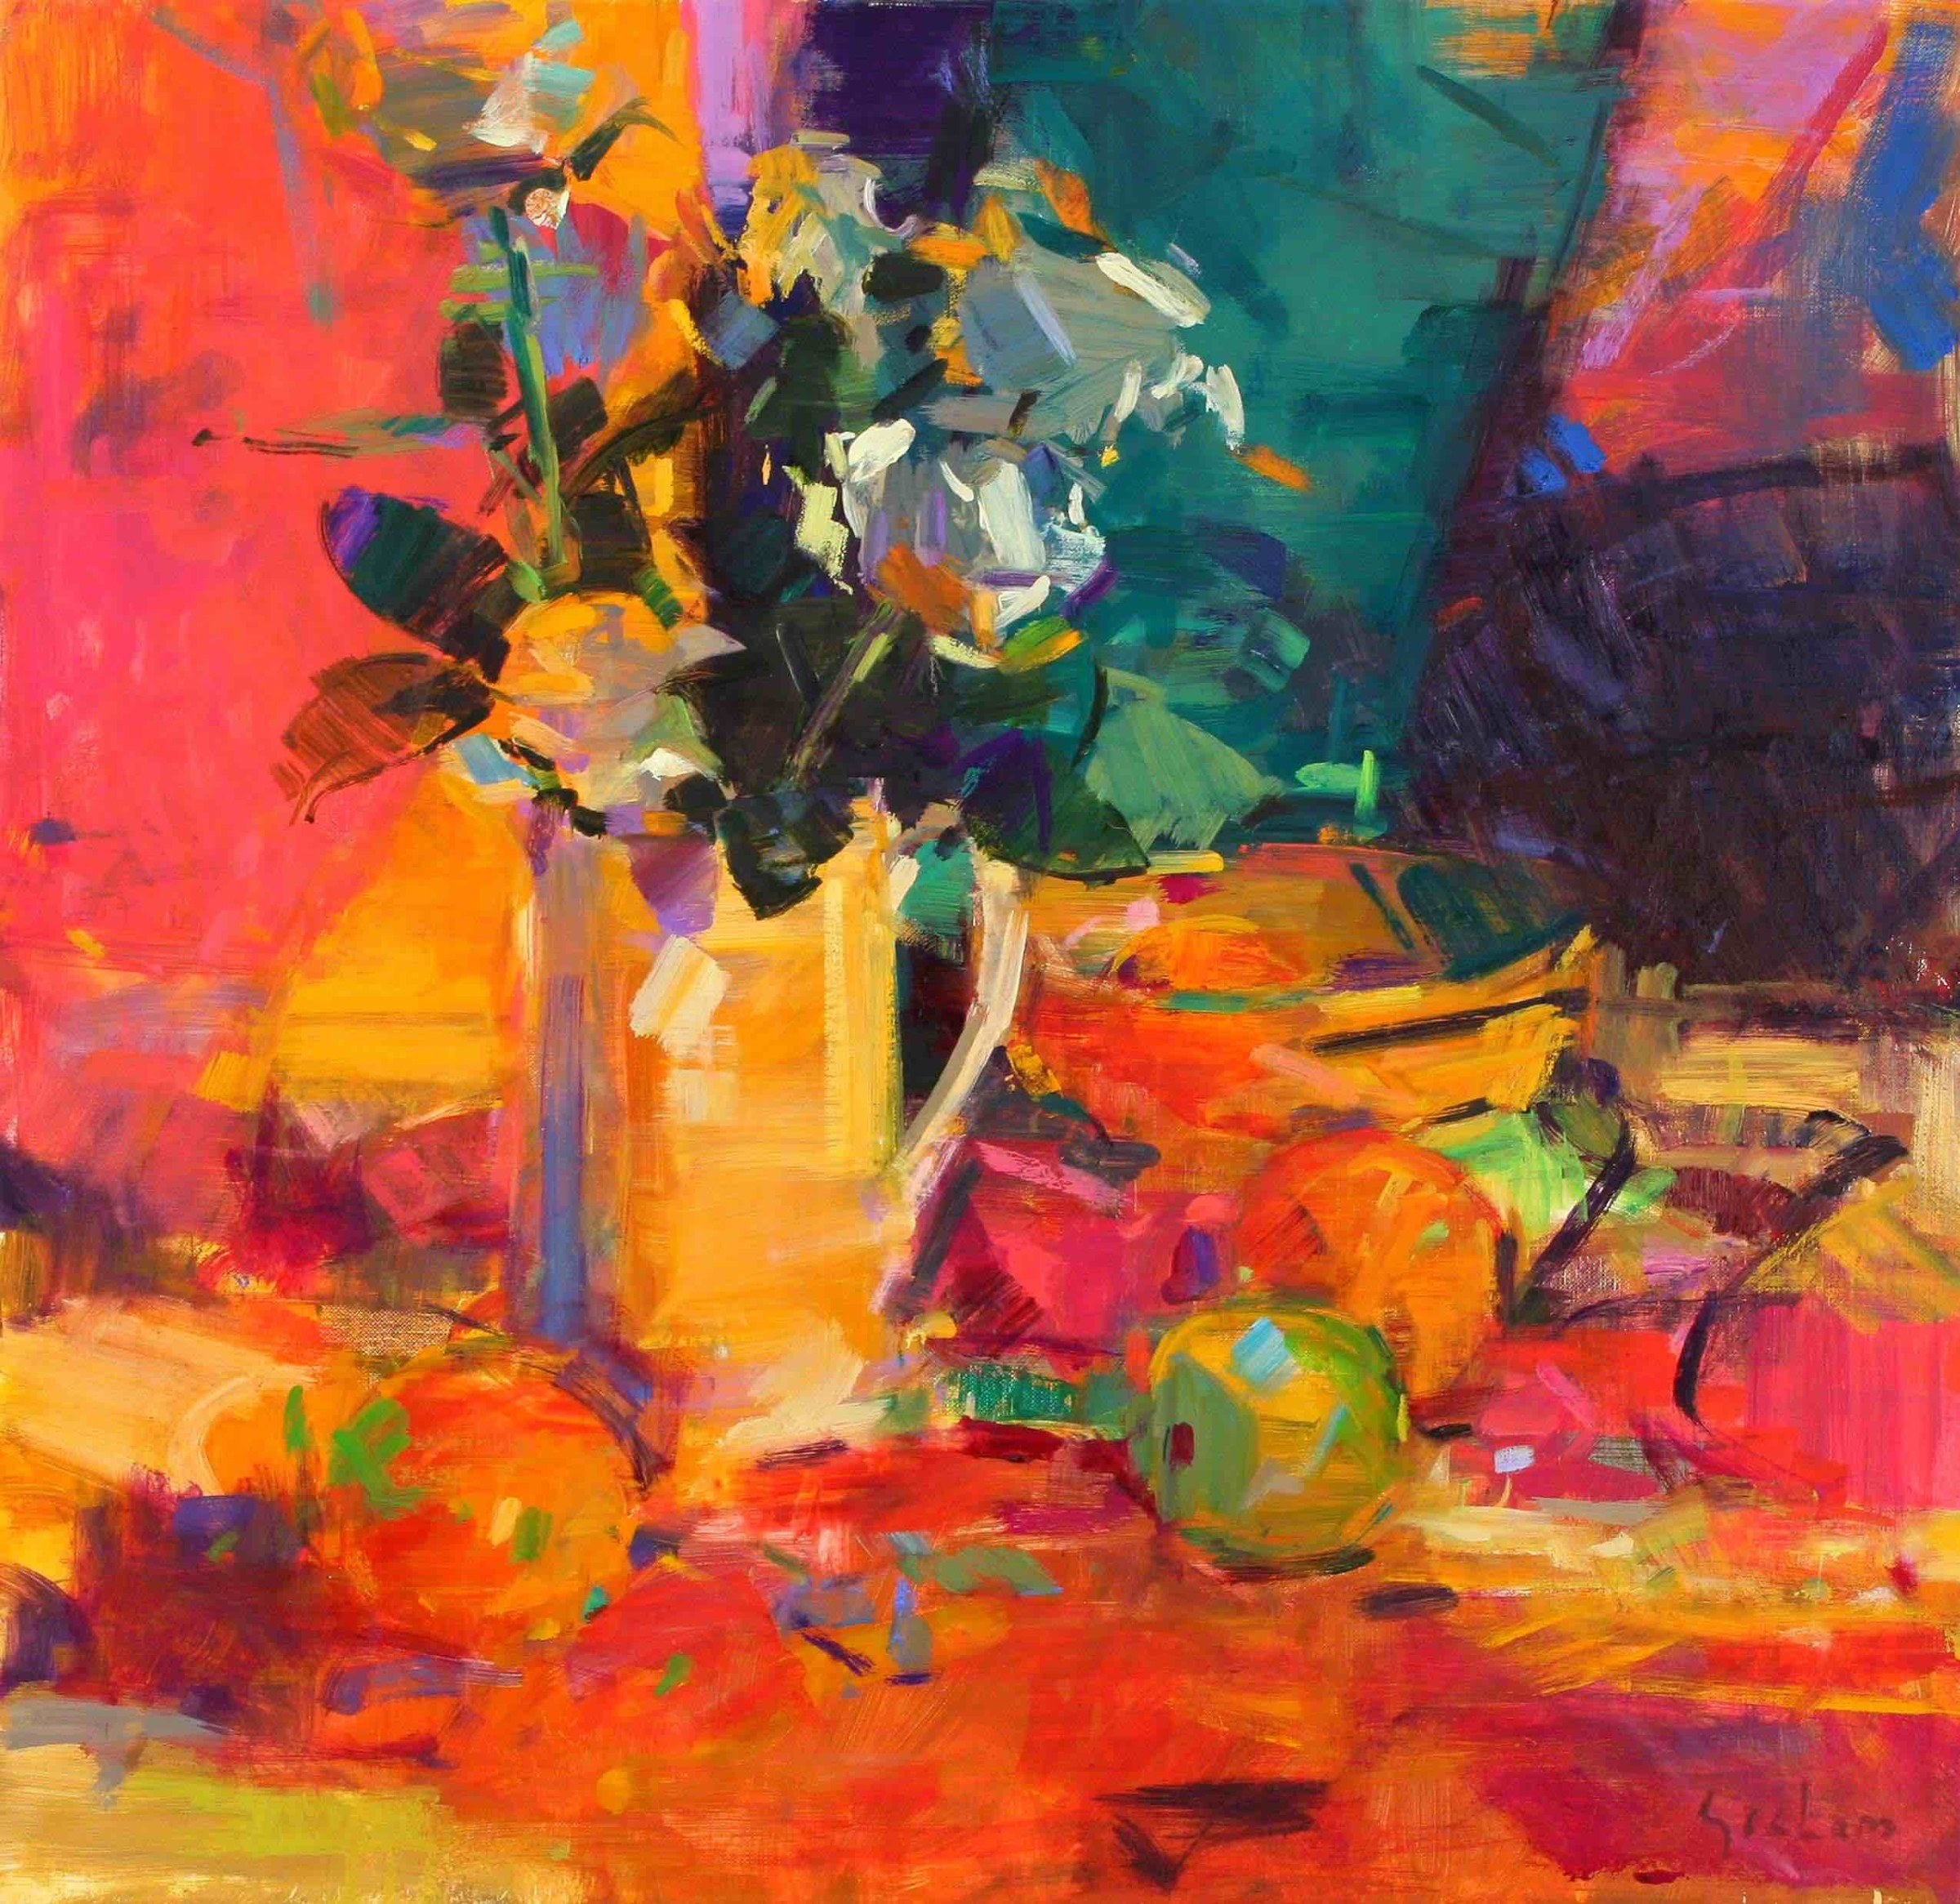 "<span class=""link fancybox-details-link""><a href=""/artists/31-peter-graham-roi/works/2551-peter-graham-roi-bouquet-with-fruits/"">View Detail Page</a></span><div class=""artist""><strong>Peter Graham ROI</strong></div> <div class=""title""><em>Bouquet with Fruits</em></div> <div class=""medium"">Oil on Canvas</div> <div class=""dimensions"">63 x 65 cm </div><div class=""copyright_line"">Copyright The Artist</div>"